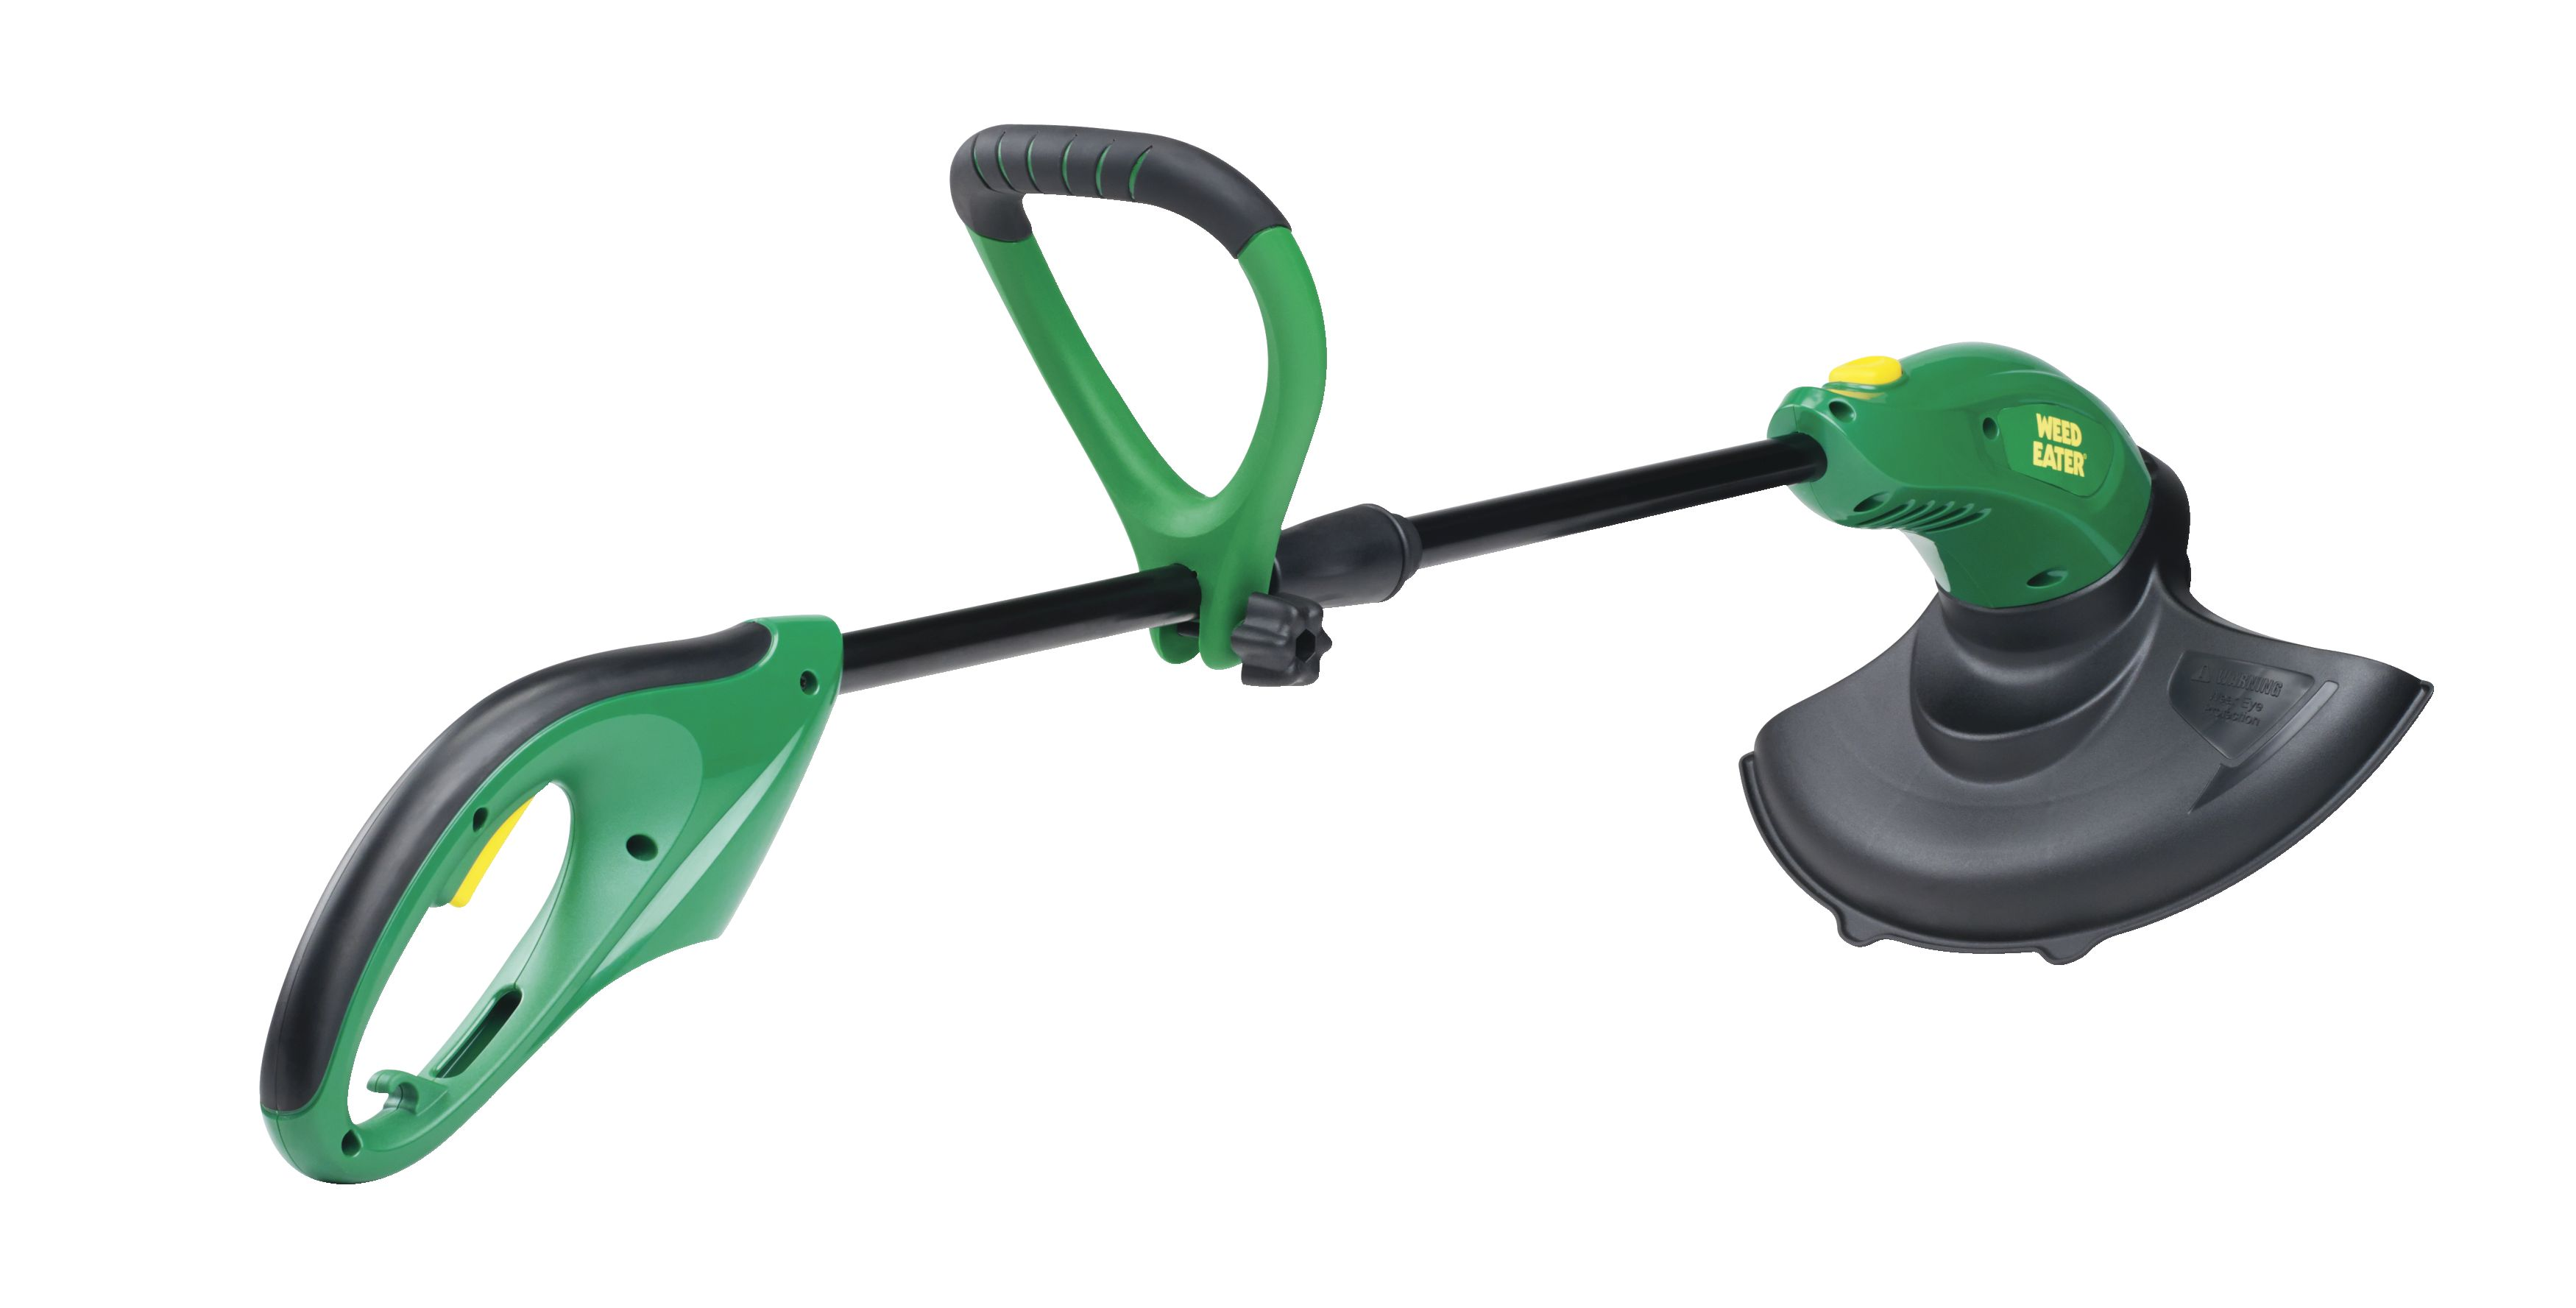 """New Weed Eater Twist 'N Edge 13"""" 120V 4.3 Amp Electric Grass Lawn Trimmer  Edger - Walmart.com"""